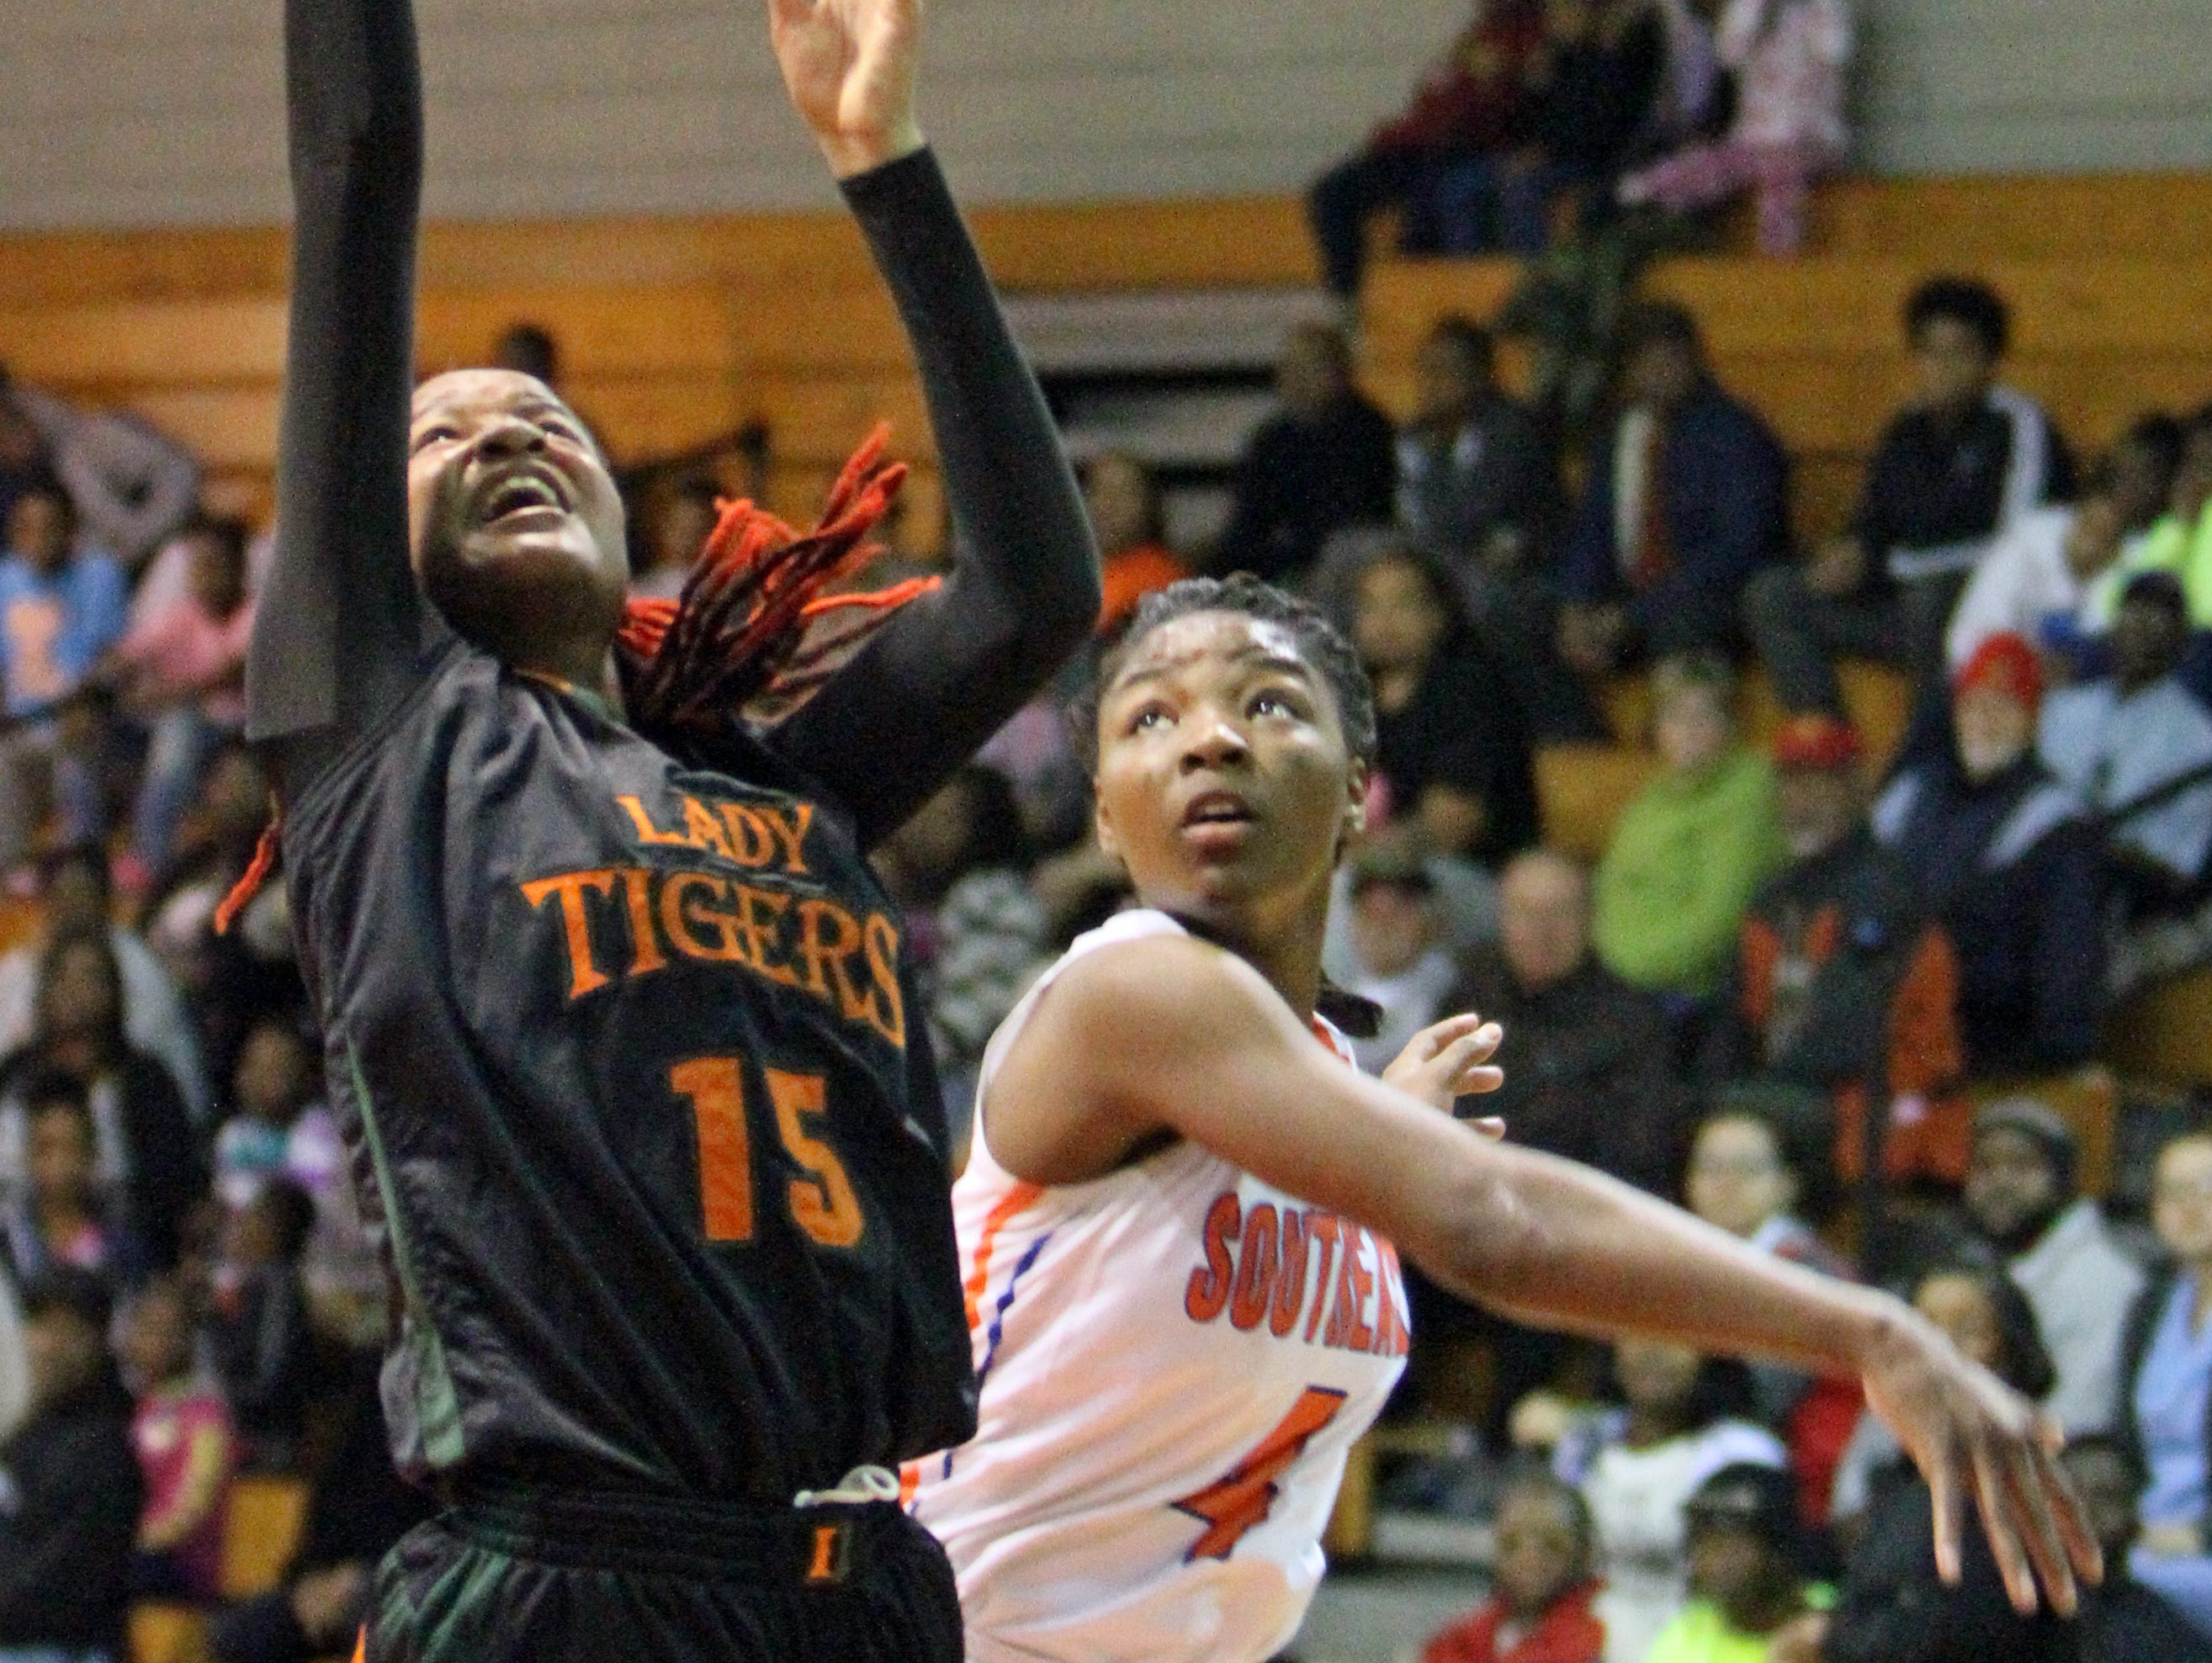 Dunbar's Dekeriya Patterson drives past Southeast's Shauntavia Green to the basket in the Class 5A-Region 3 semifinals Tuesday night at Buzz Narbut Gymnasium.